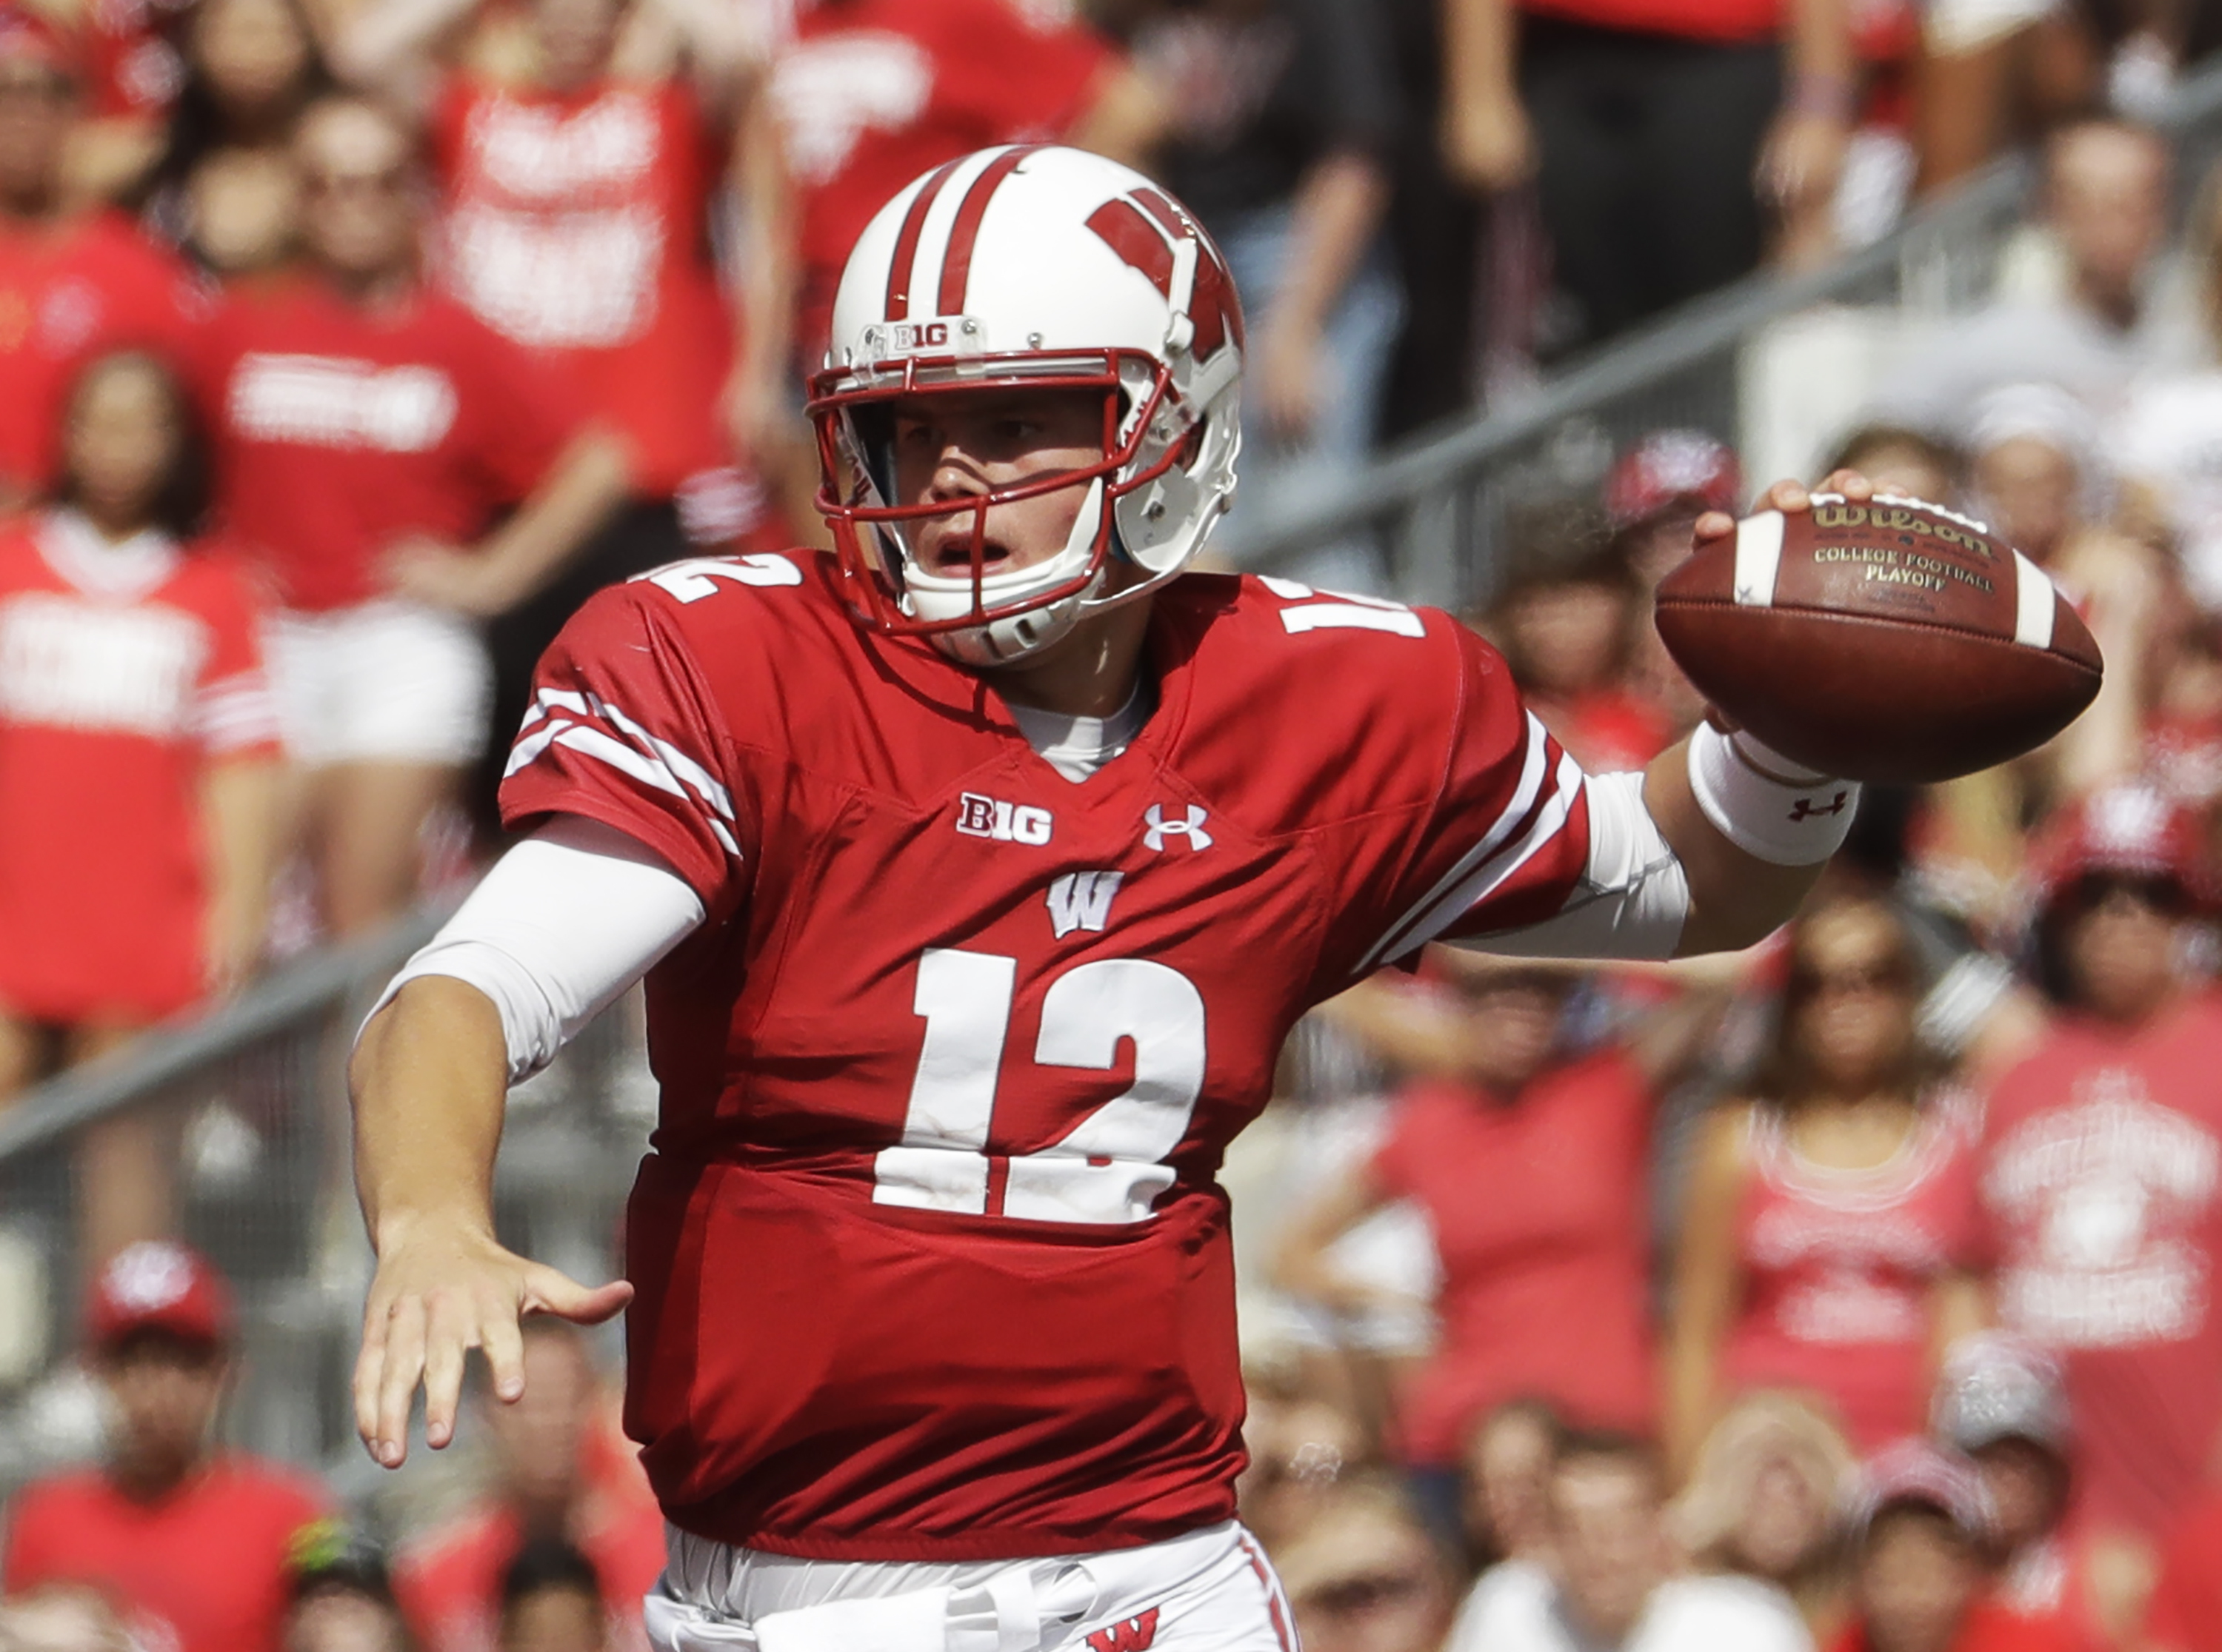 Wisconsin quarterback Alex Hornibrook throws during the second half of an NCAA college football game against Georgia State Saturday, Sept. 17, 2016, in Madison, Wis. Wisconsin won 23-17. (AP Photo/Morry Gash)